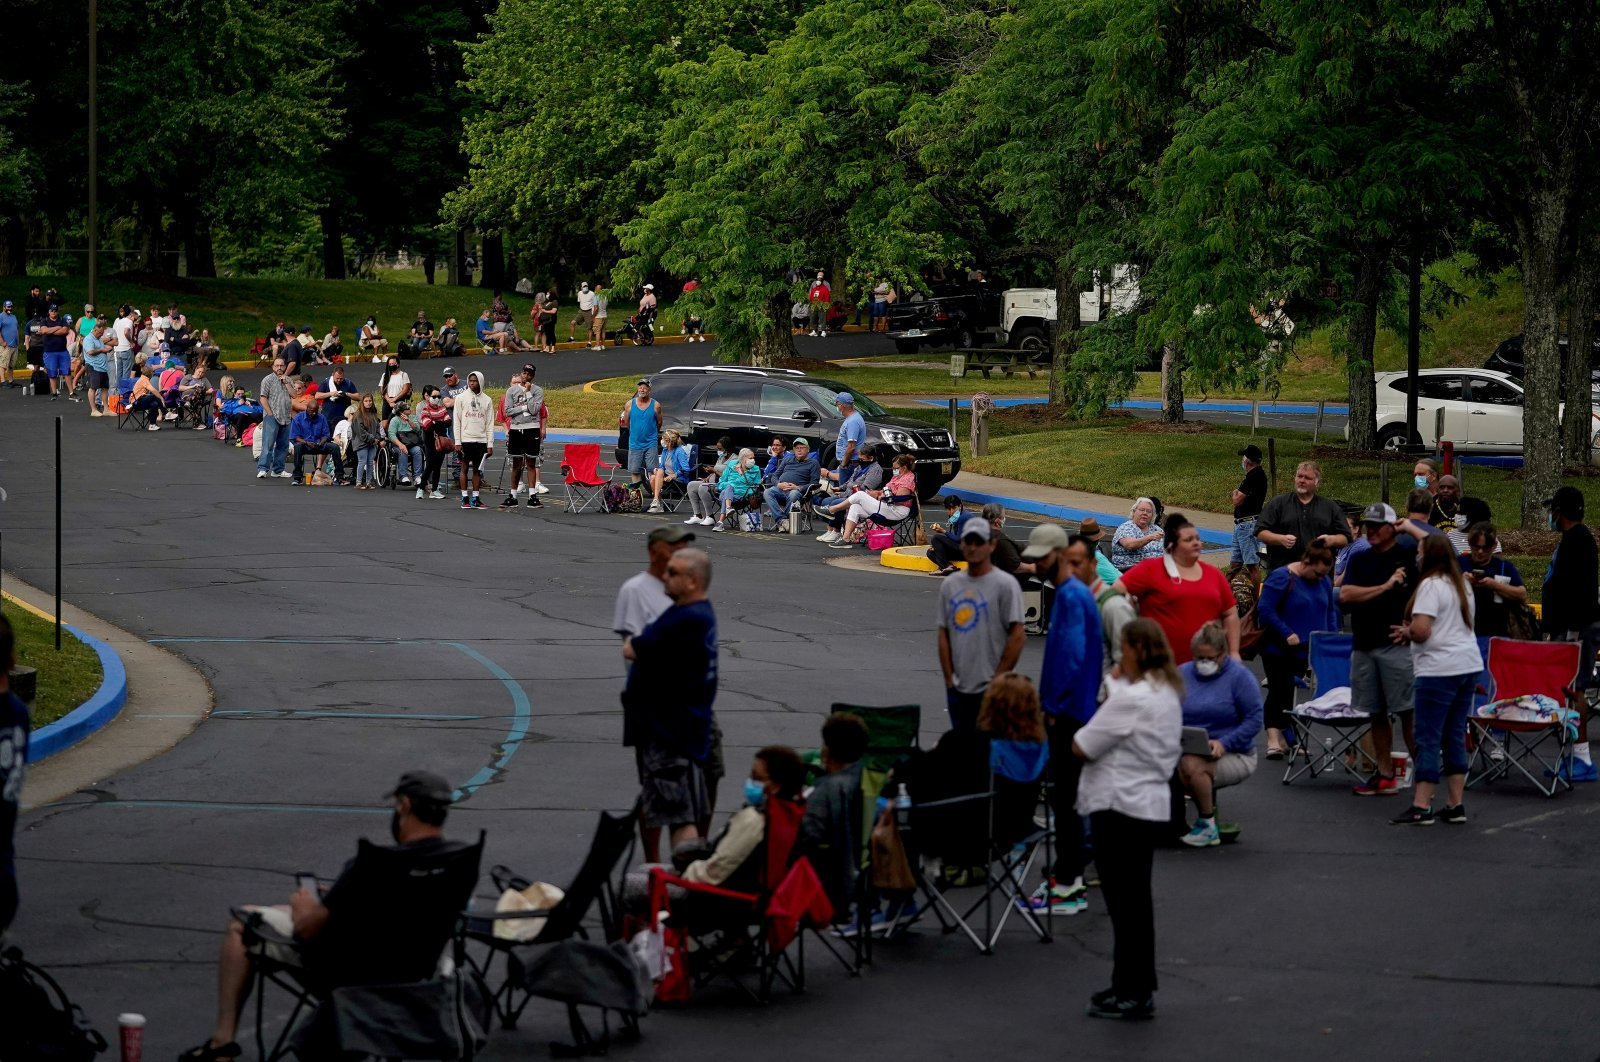 People line up outside Kentucky Career Center prior to its opening to find assistance with their unemployment claims in Frankfort, Kentucky, U.S., June 18, 2020. (Reuters Photo)